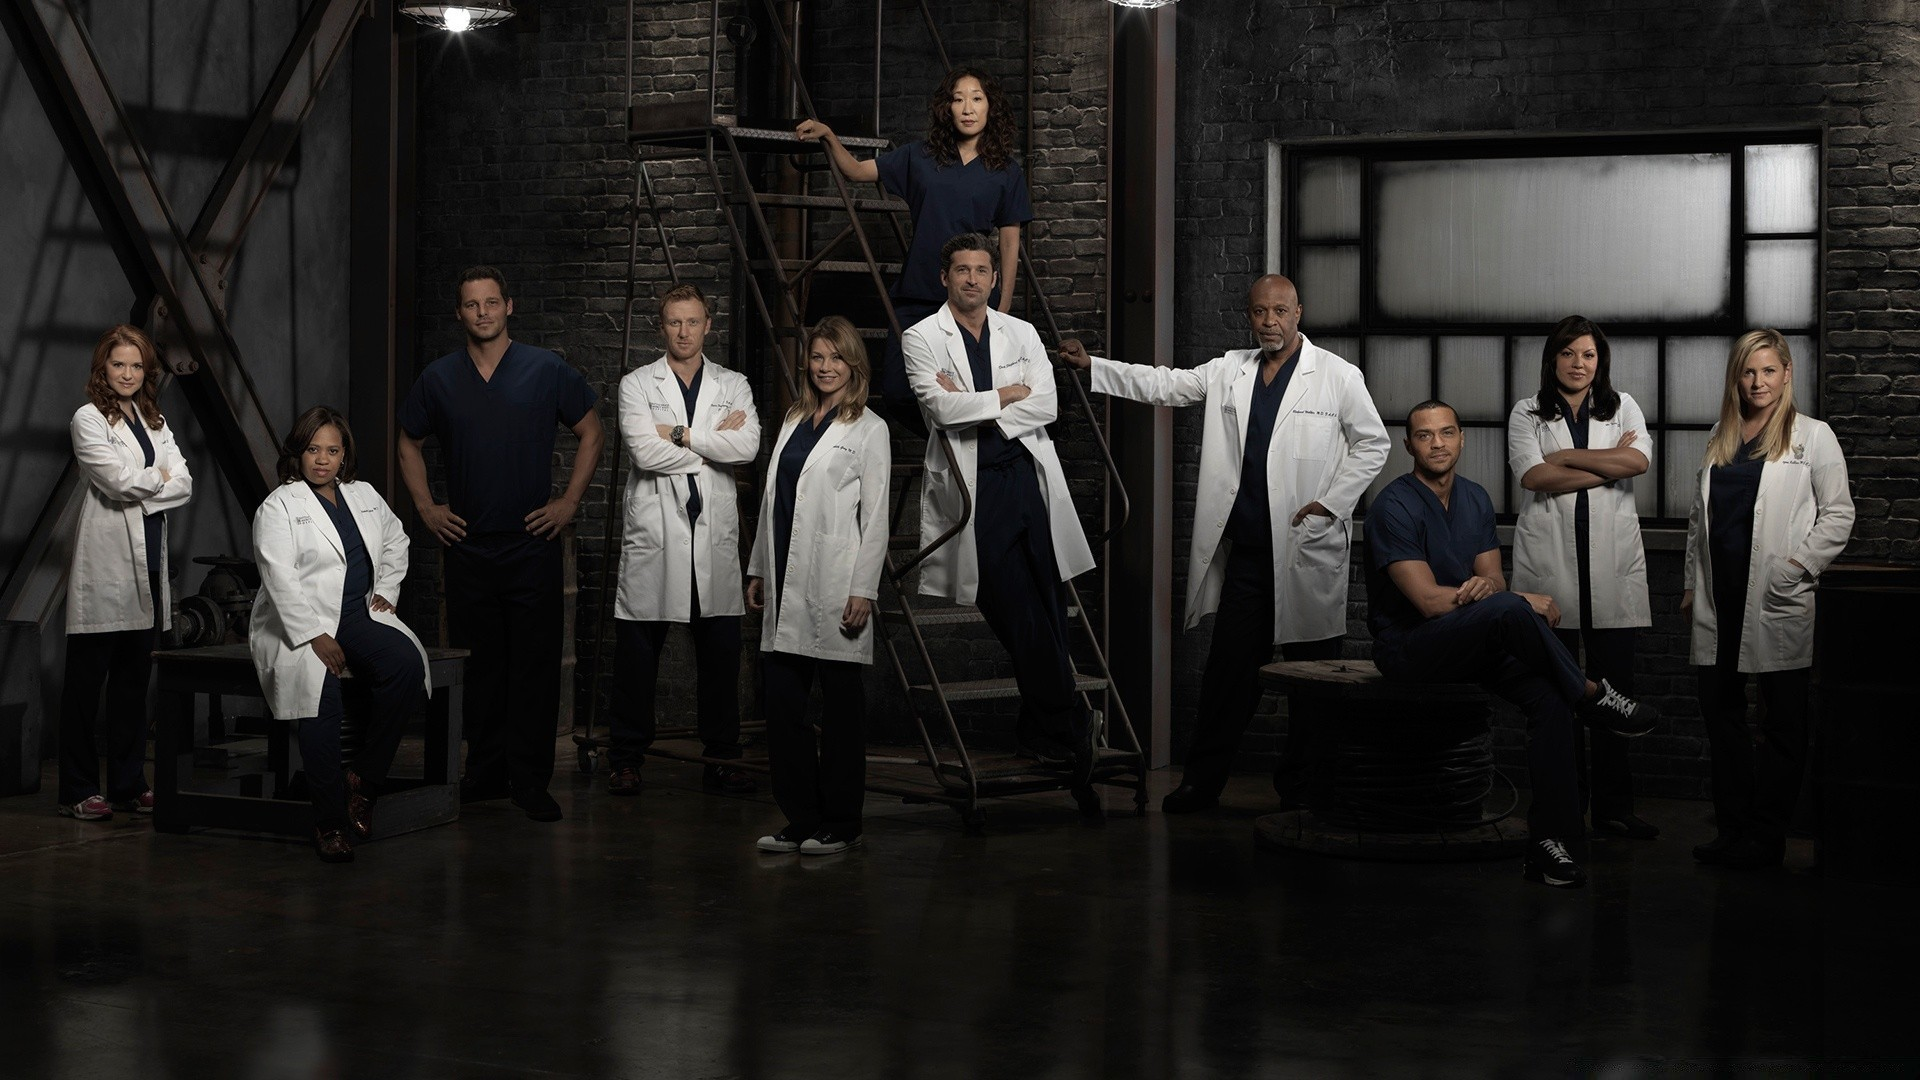 Greys Anatomy TV Show Cast. Android wallpapers for free.